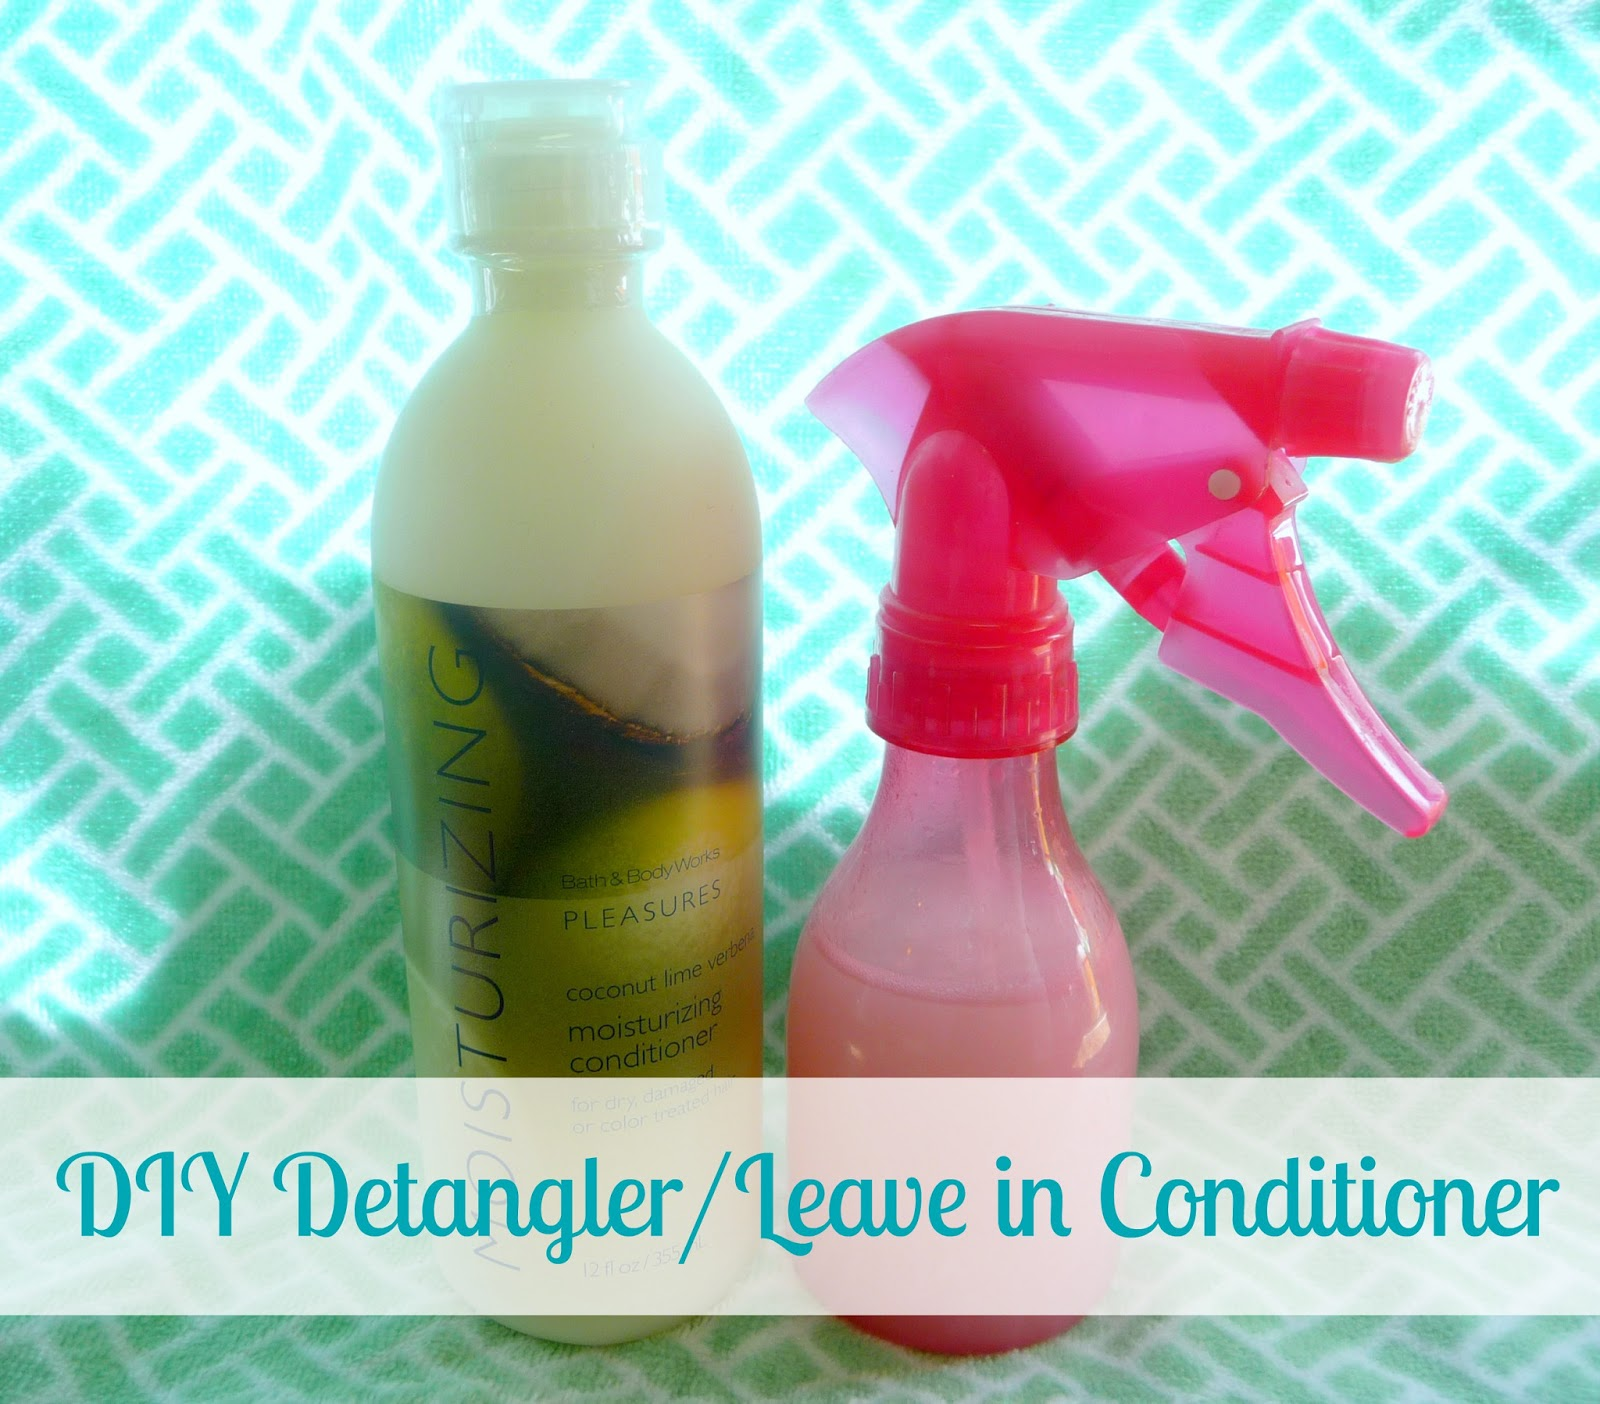 DIY hair detangler and leave in conditioner